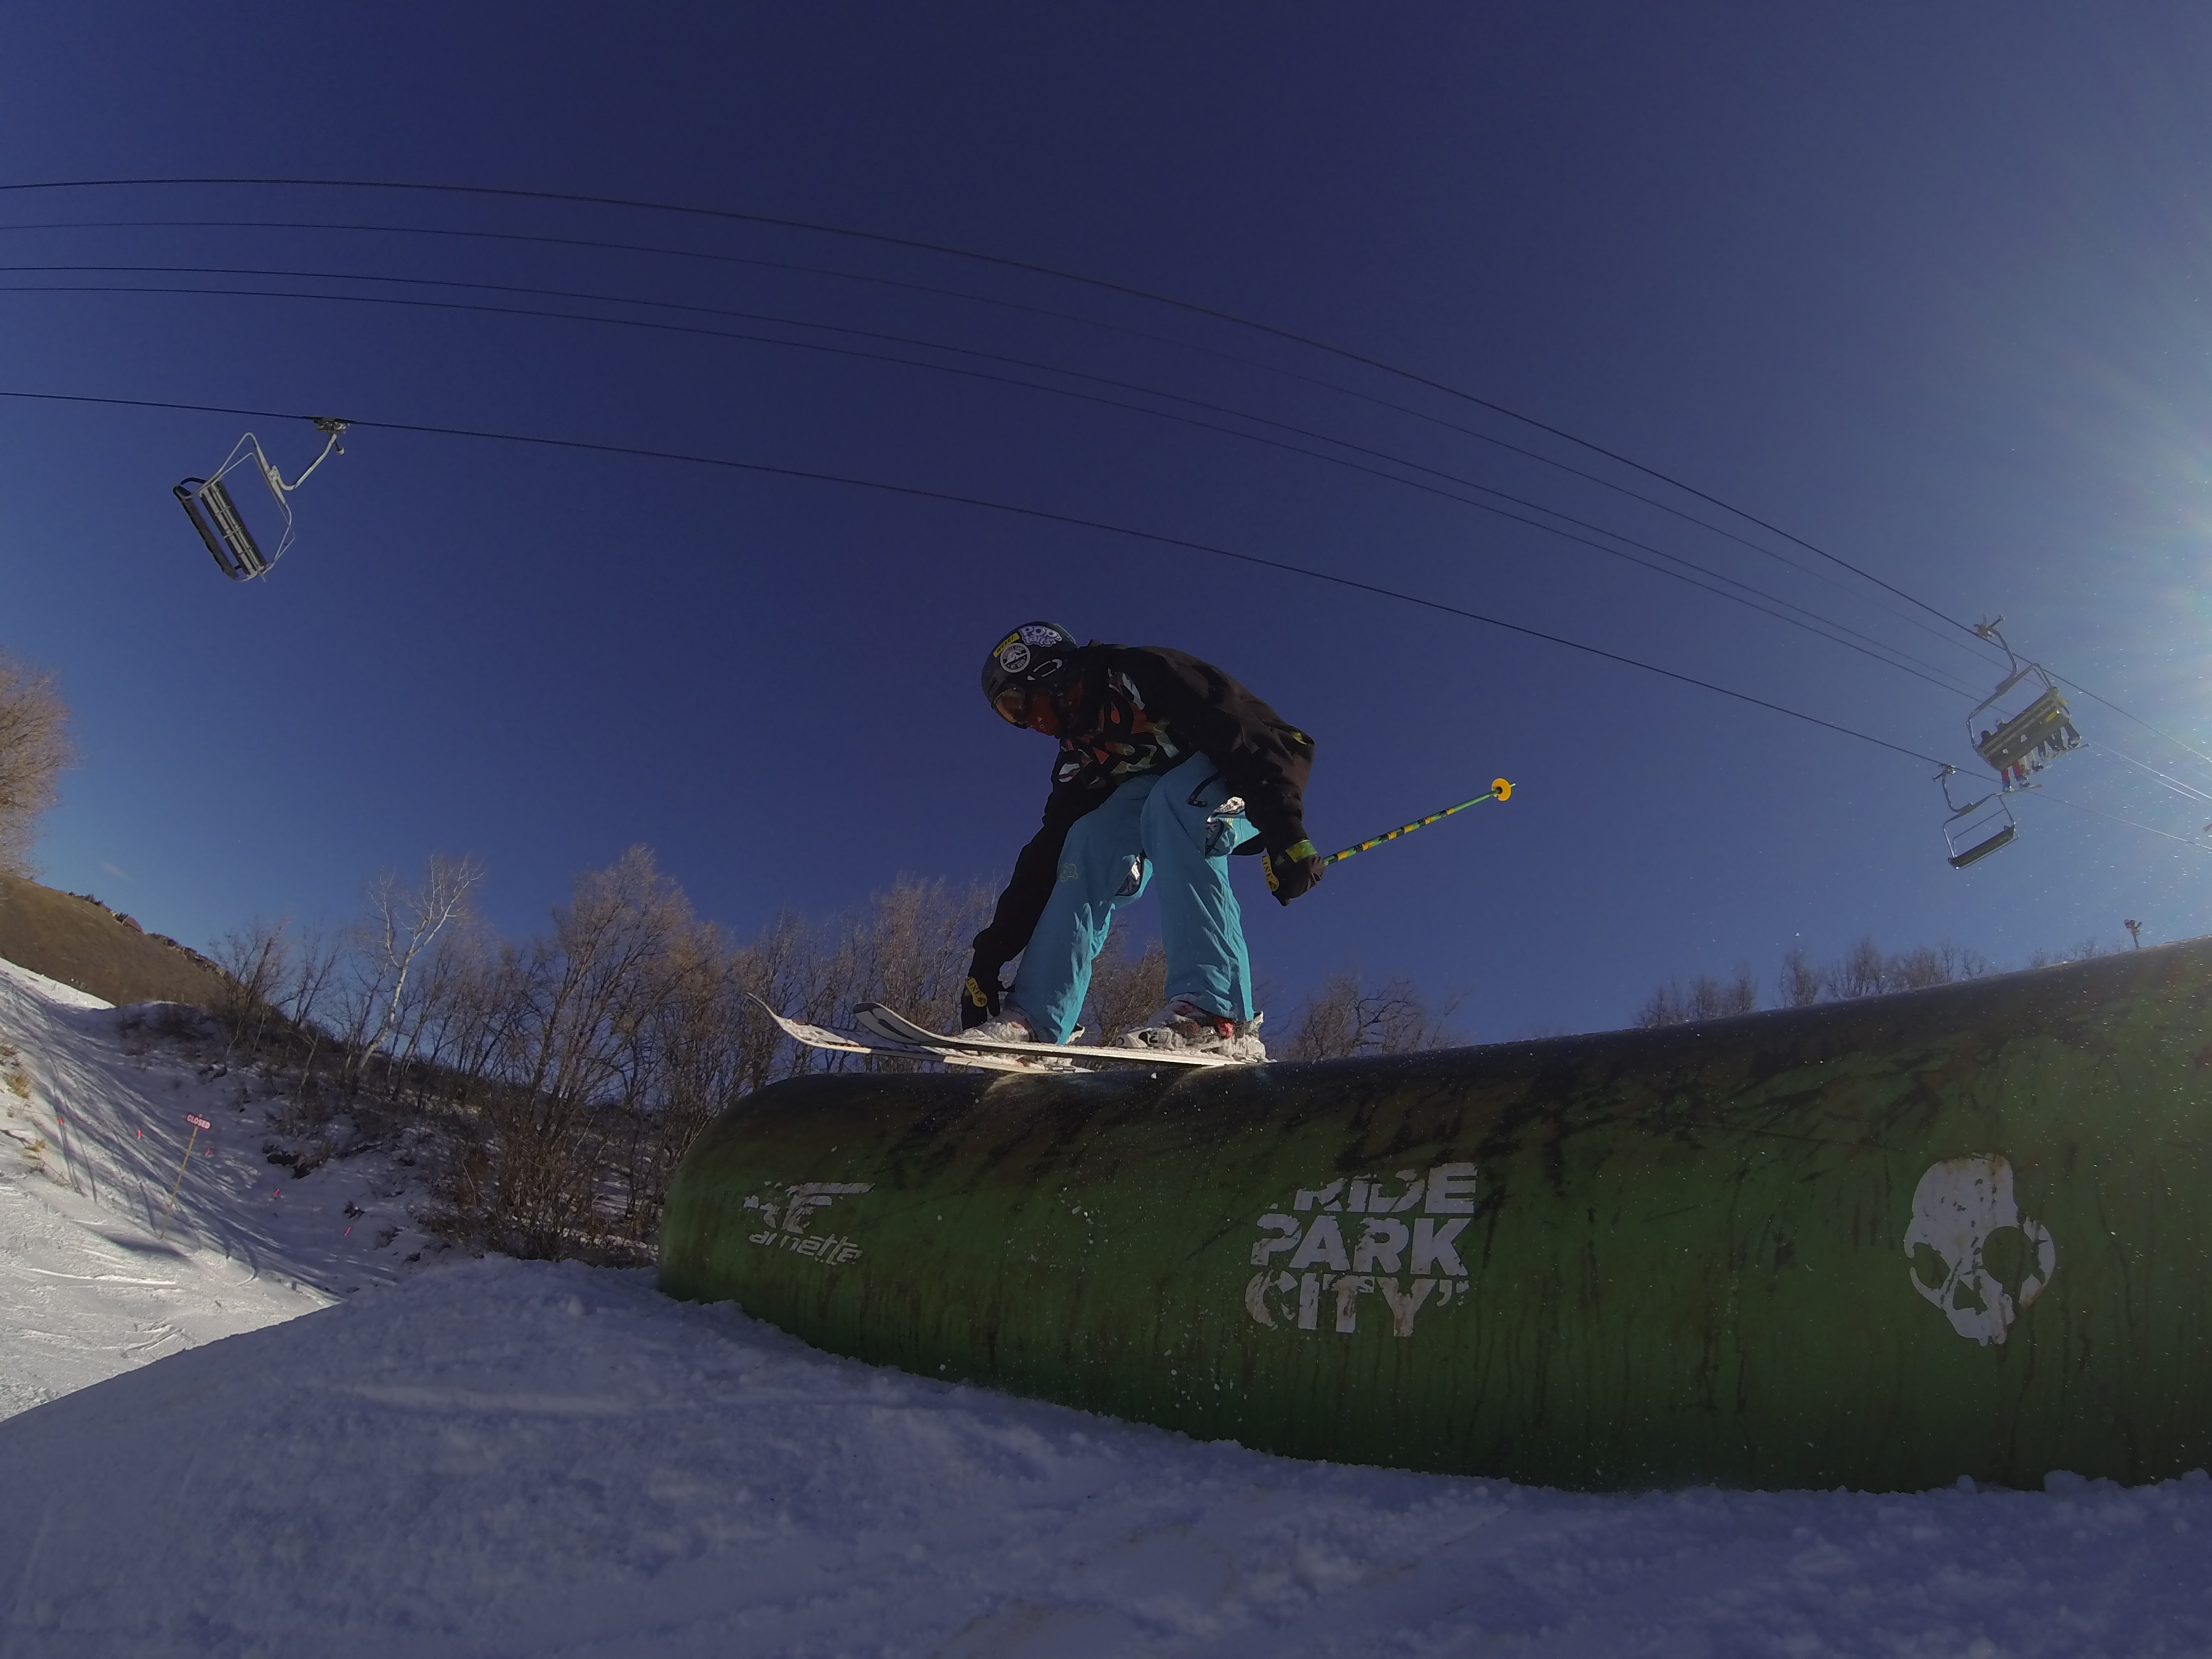 Grinding the pill at Park City